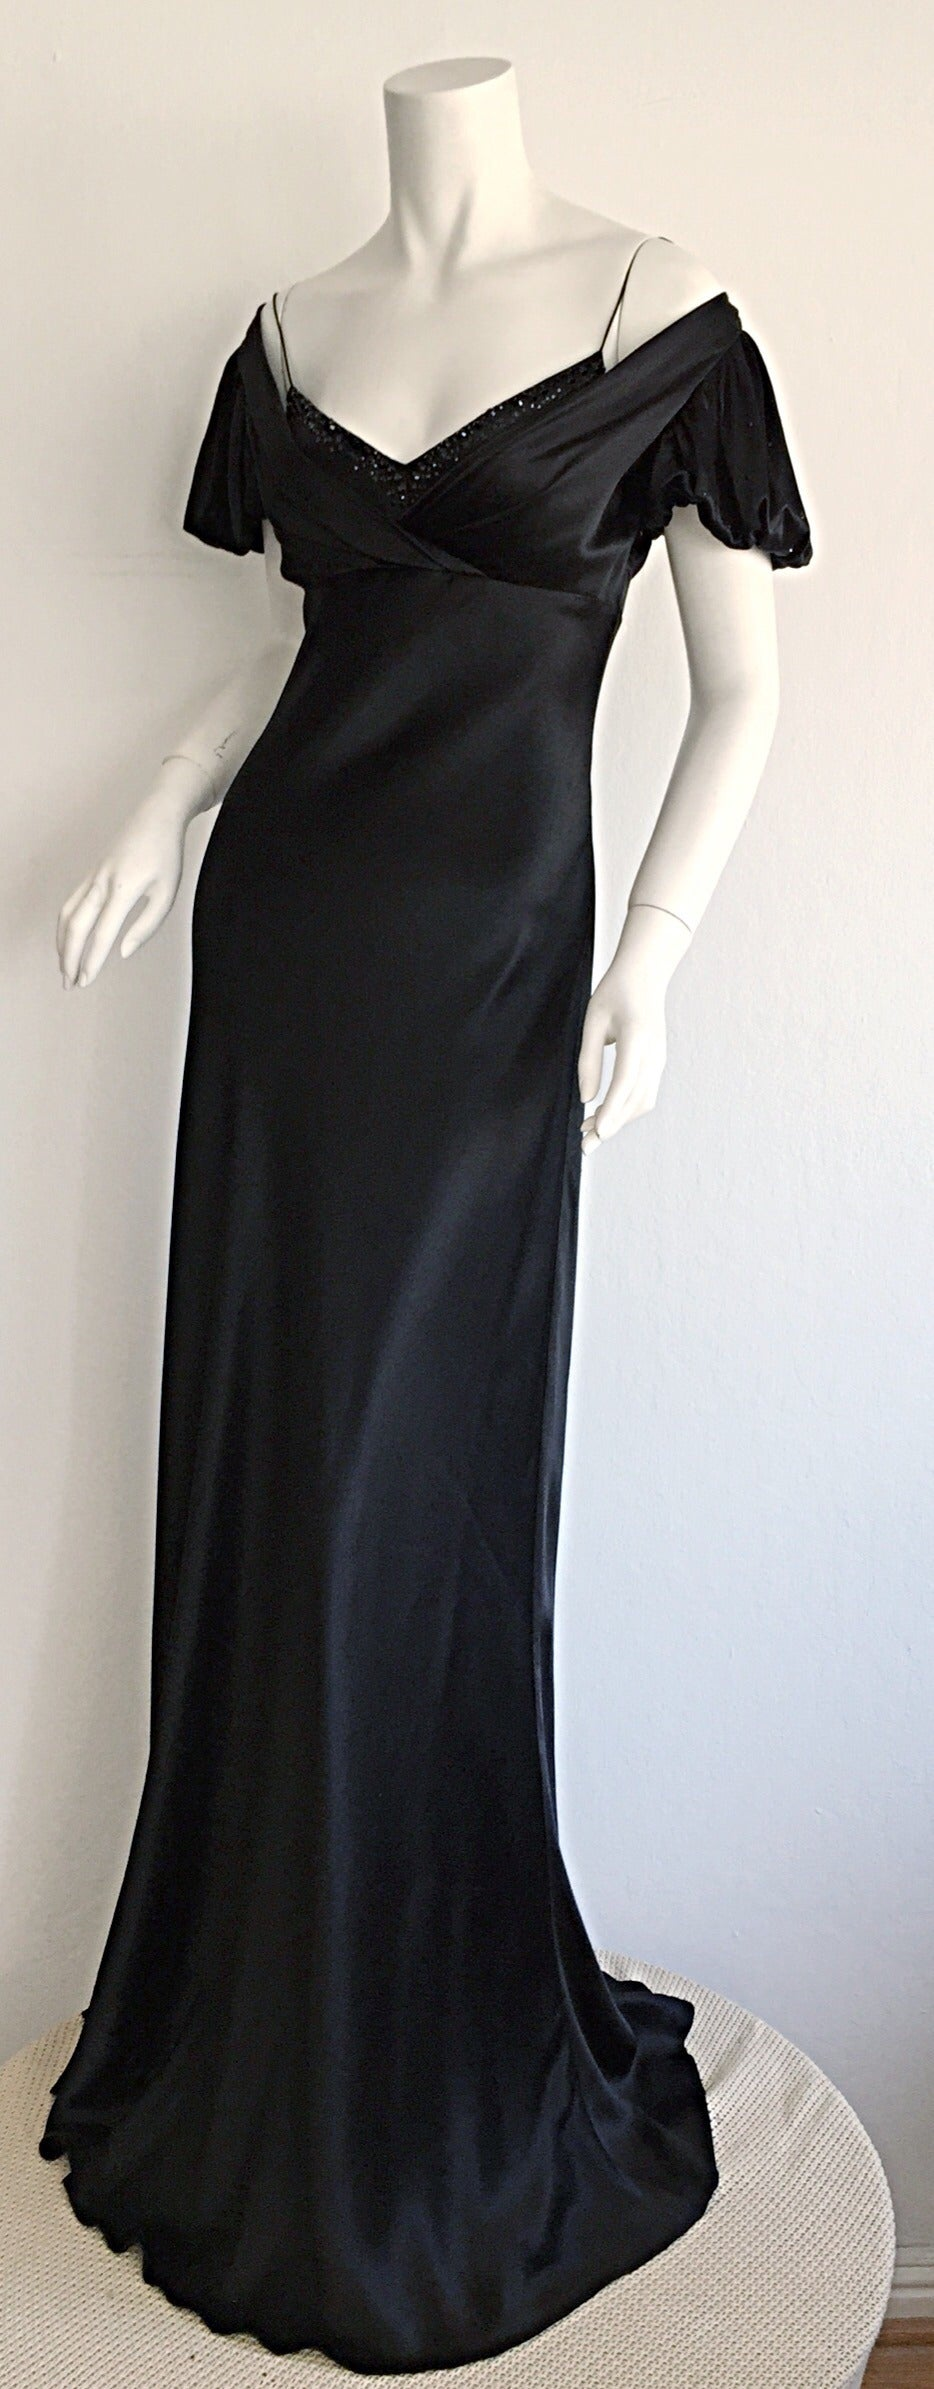 Stunning Jenny Packham 90s Vintage Black Silk Romantic ' Fluid ' Gown w/ Jewels For Sale 2